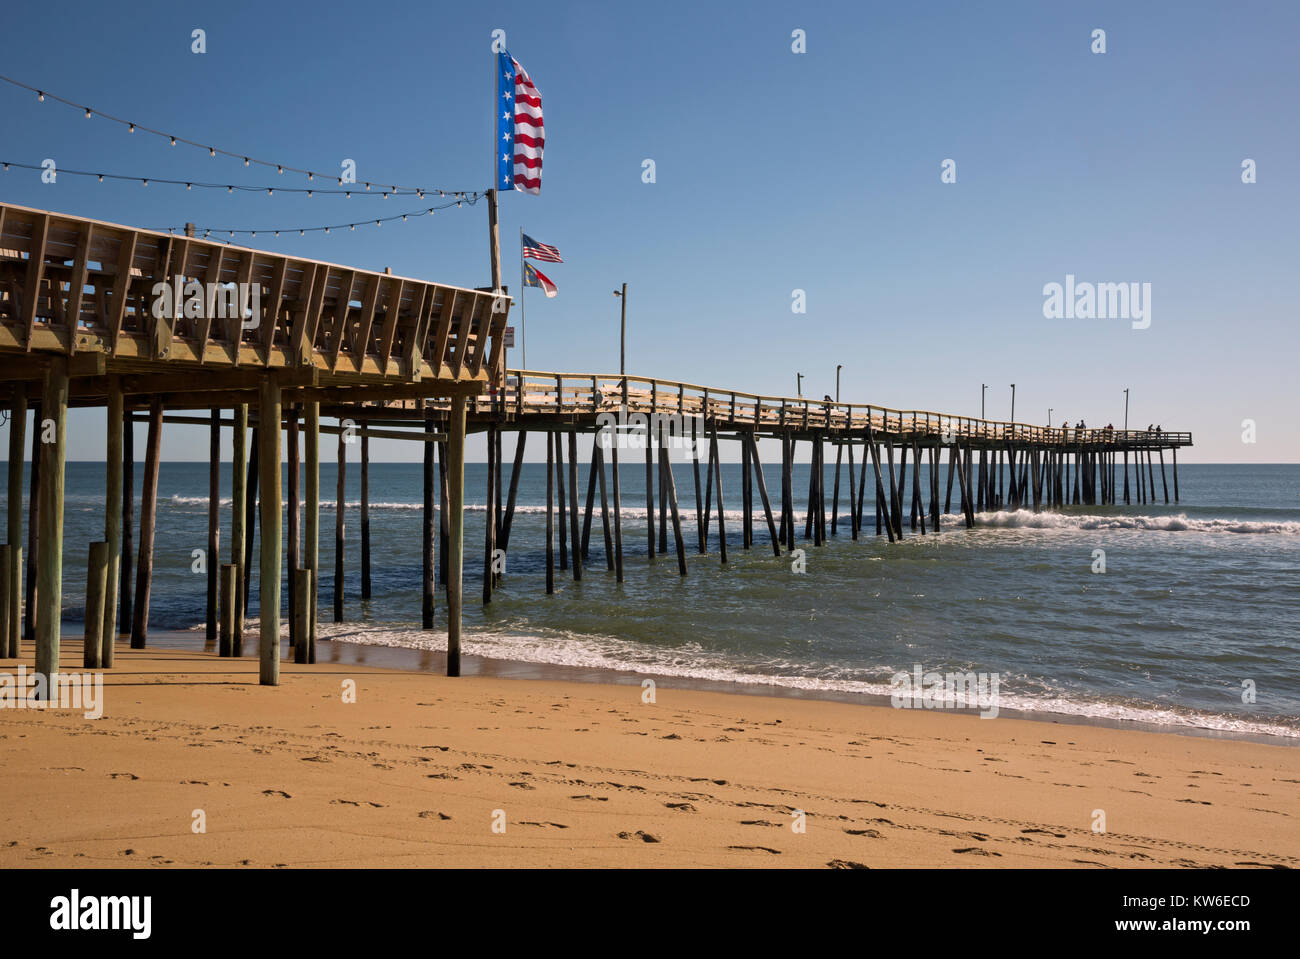 NC01190-00...NORTH CAROLINA - Flags flying on the Outer Banks Fishing Pier, located on the Atlantic Ocean in South Stock Photo